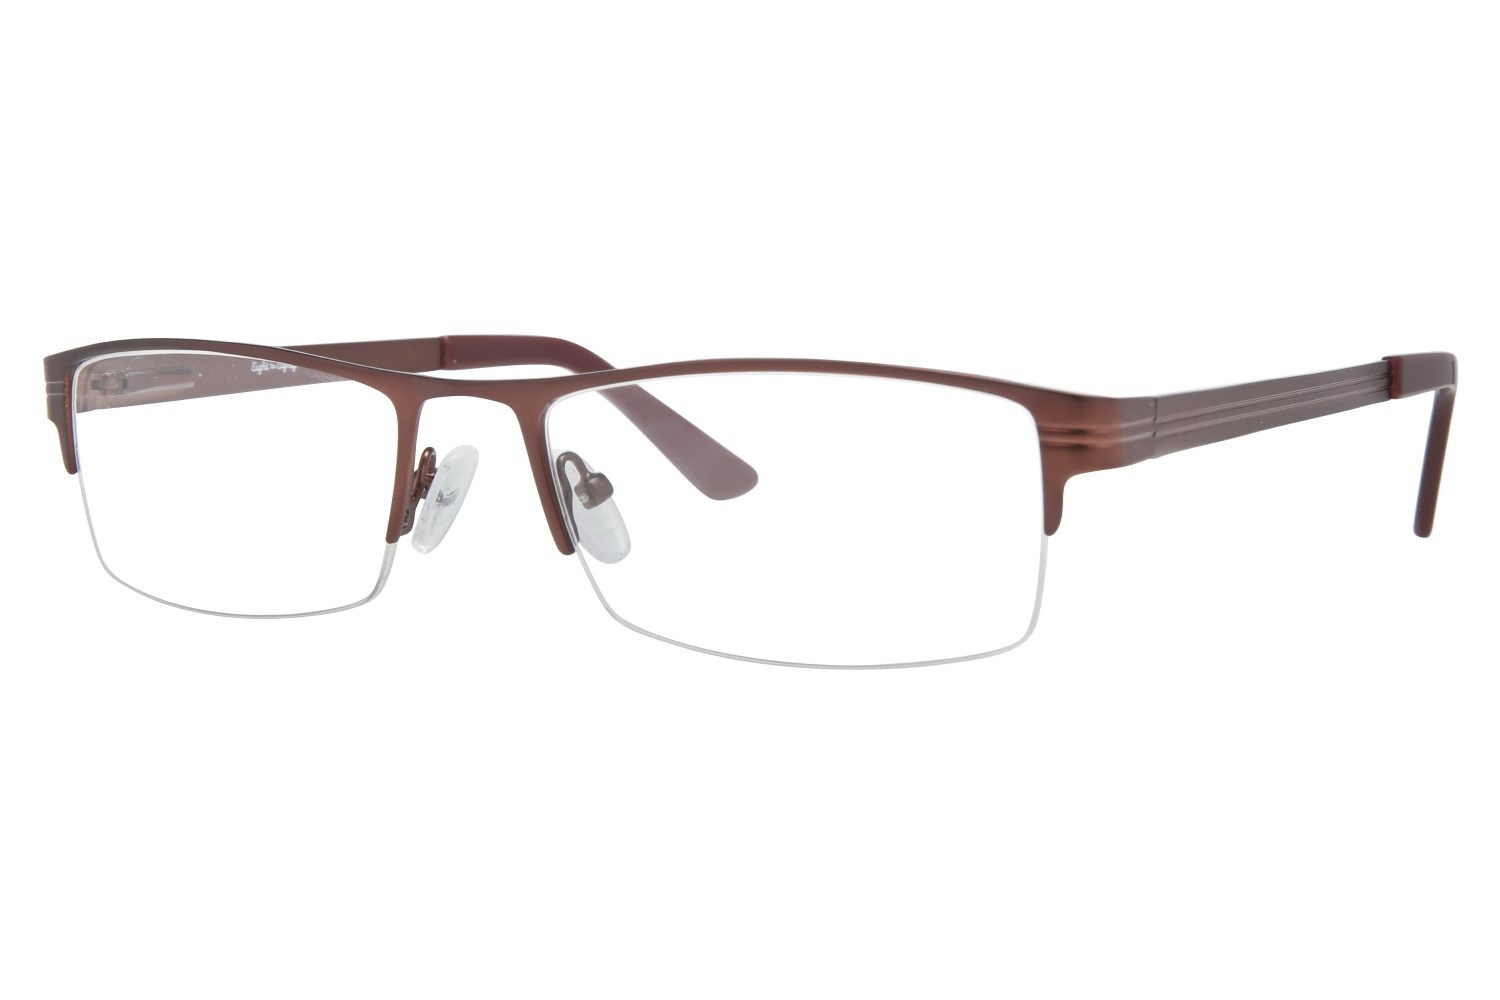 3a1032976a9  39.95 More Details · Eight To Eighty Eyewear Artie Eyeglasses Frames